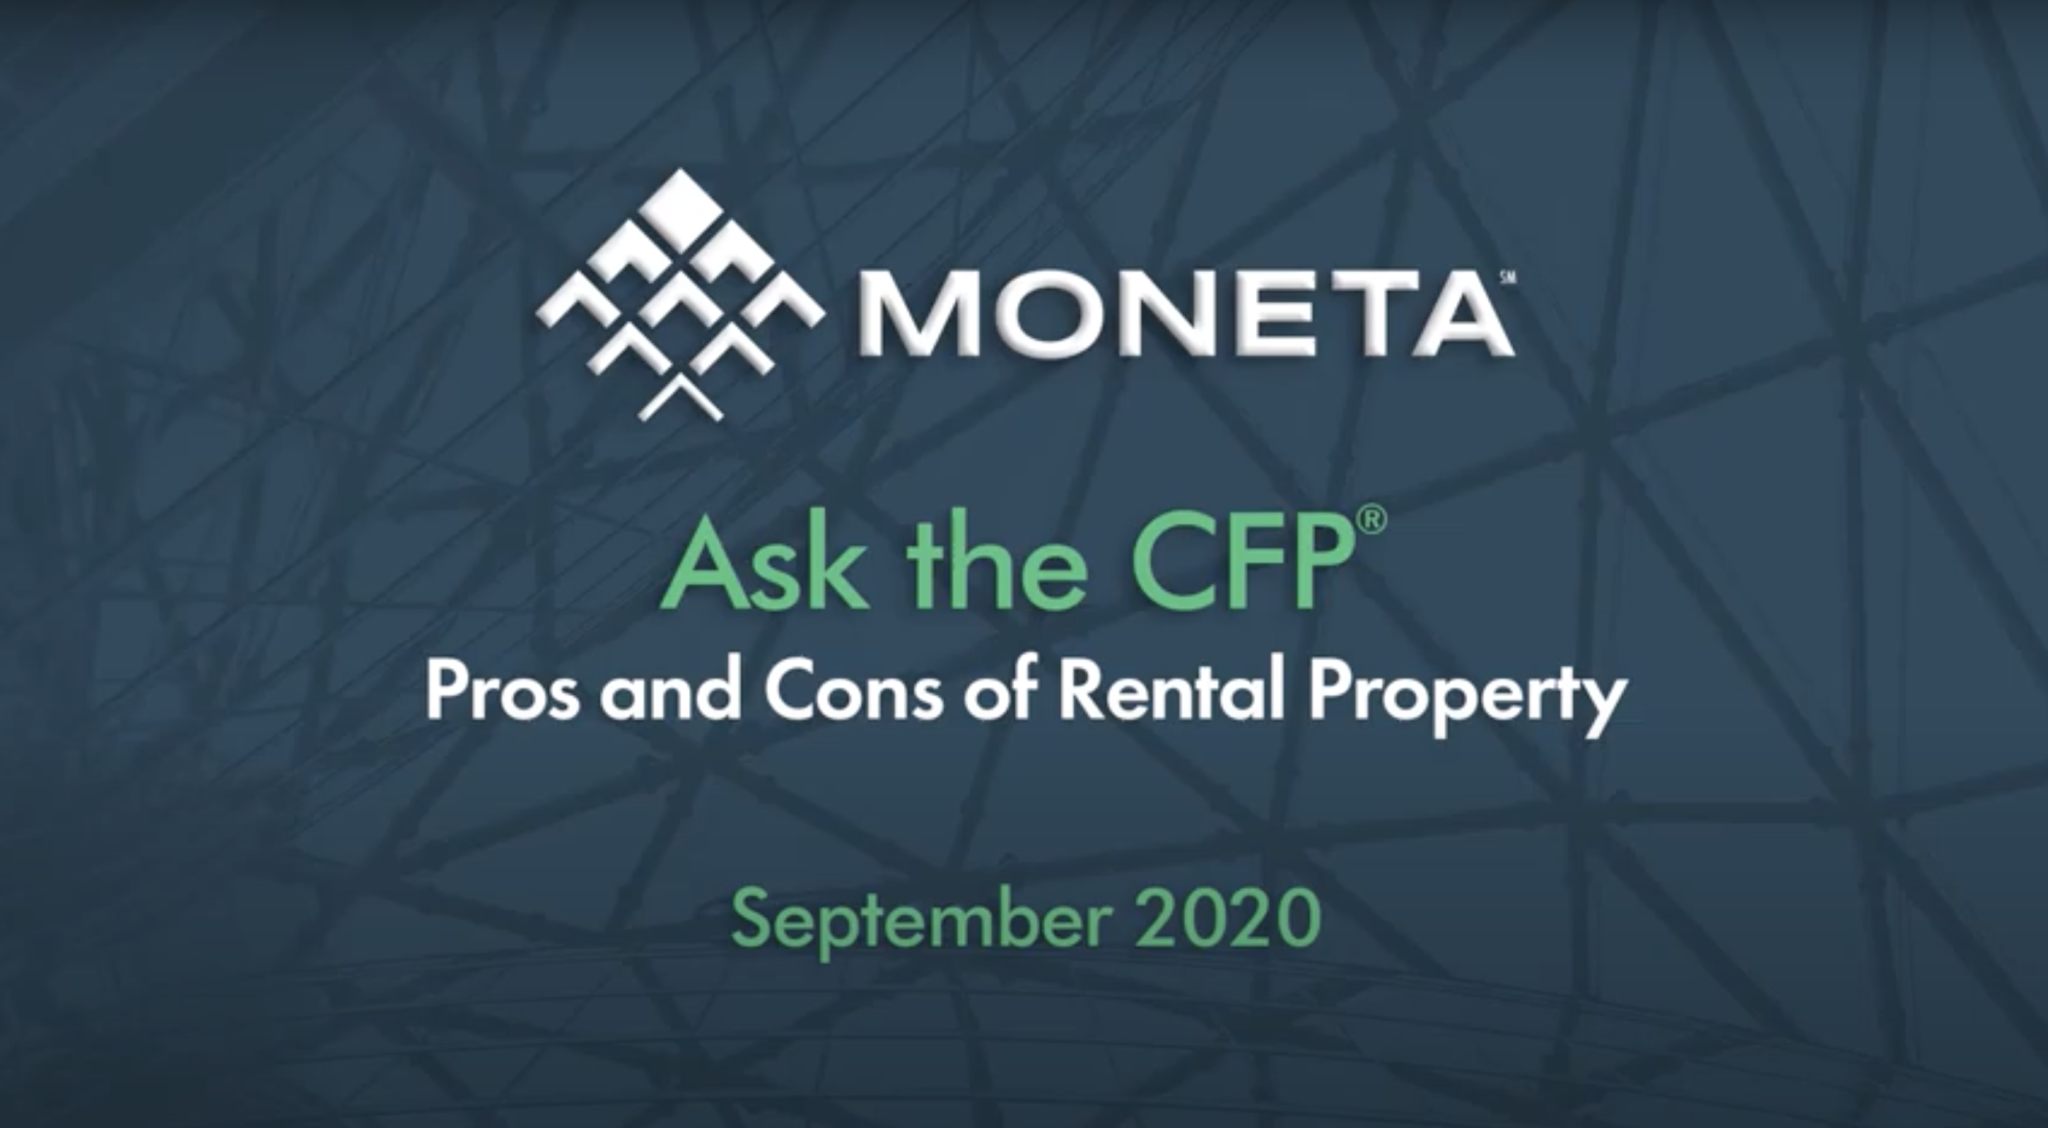 Ask the CFP- Pros and Cons of Rental Property.